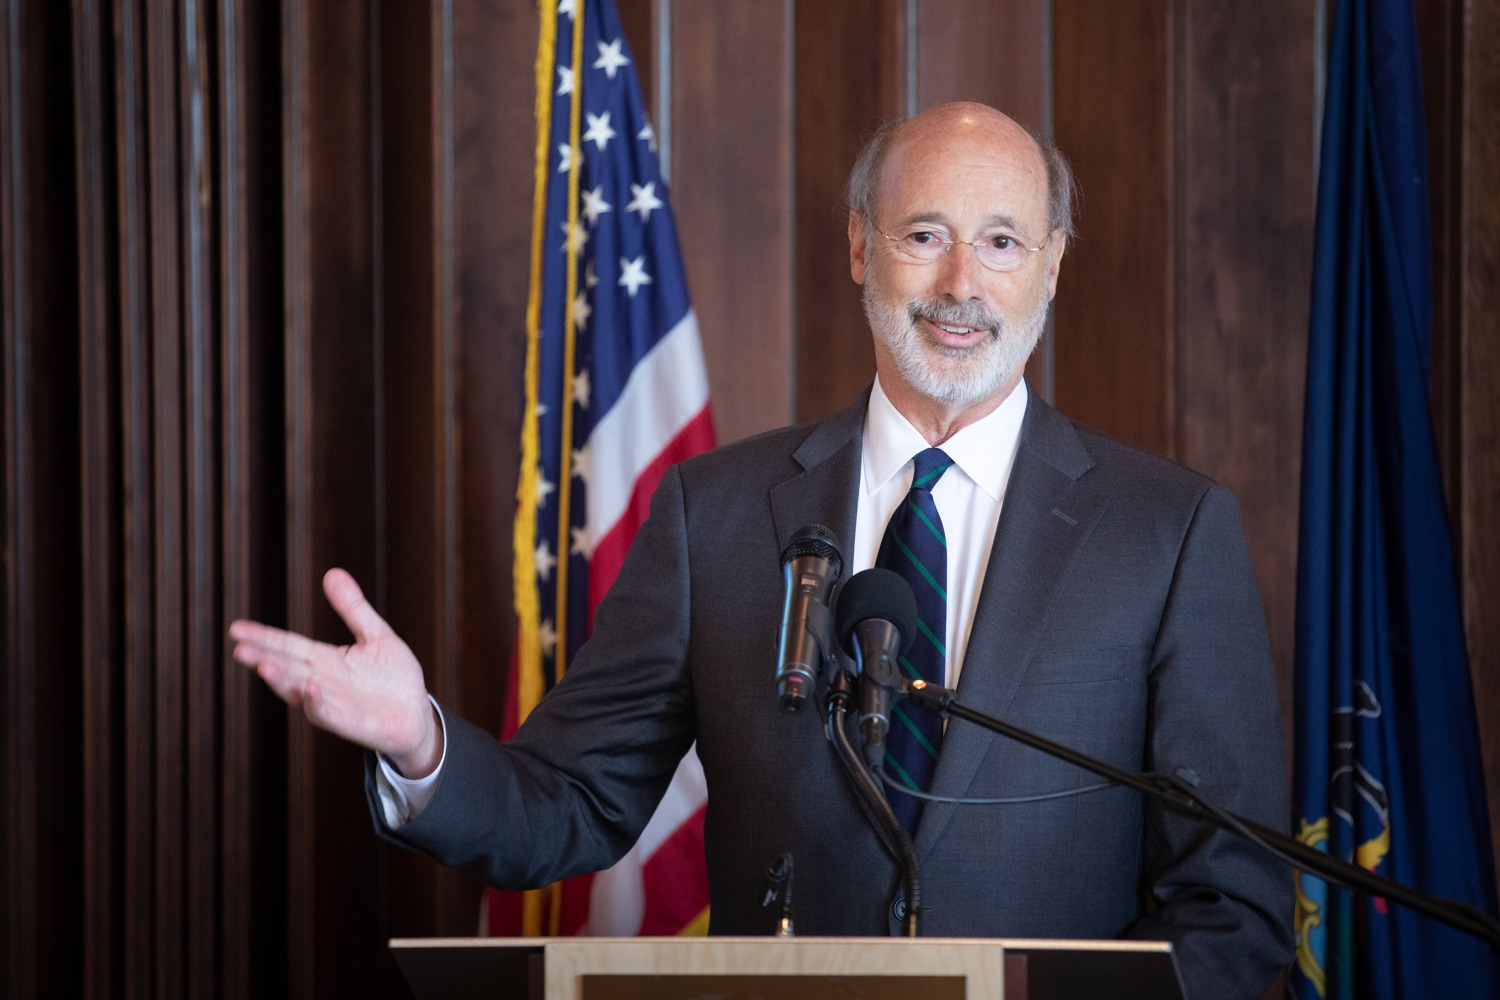 """<a href=""""https://filesource.wostreaming.net/commonwealthofpa/photo/17467_gov_opioids_dz_001.JPG"""" target=""""_blank"""">⇣Download Photo<br></a>Boalsburg, PA  Governor Tom Wolf addressing the summit.  Governor Tom Wolf today kicked off his administrations first Opioid Command Center Opioid Summit: Think Globally, Act Locally, which brought together 200 individuals helping their communities fight the opioid crisis, including community organizations, non-profits, schools, health care workers, addiction and recovery specialists, and families affected by the opioid crisis.  Tuesday, October 1, 2019"""